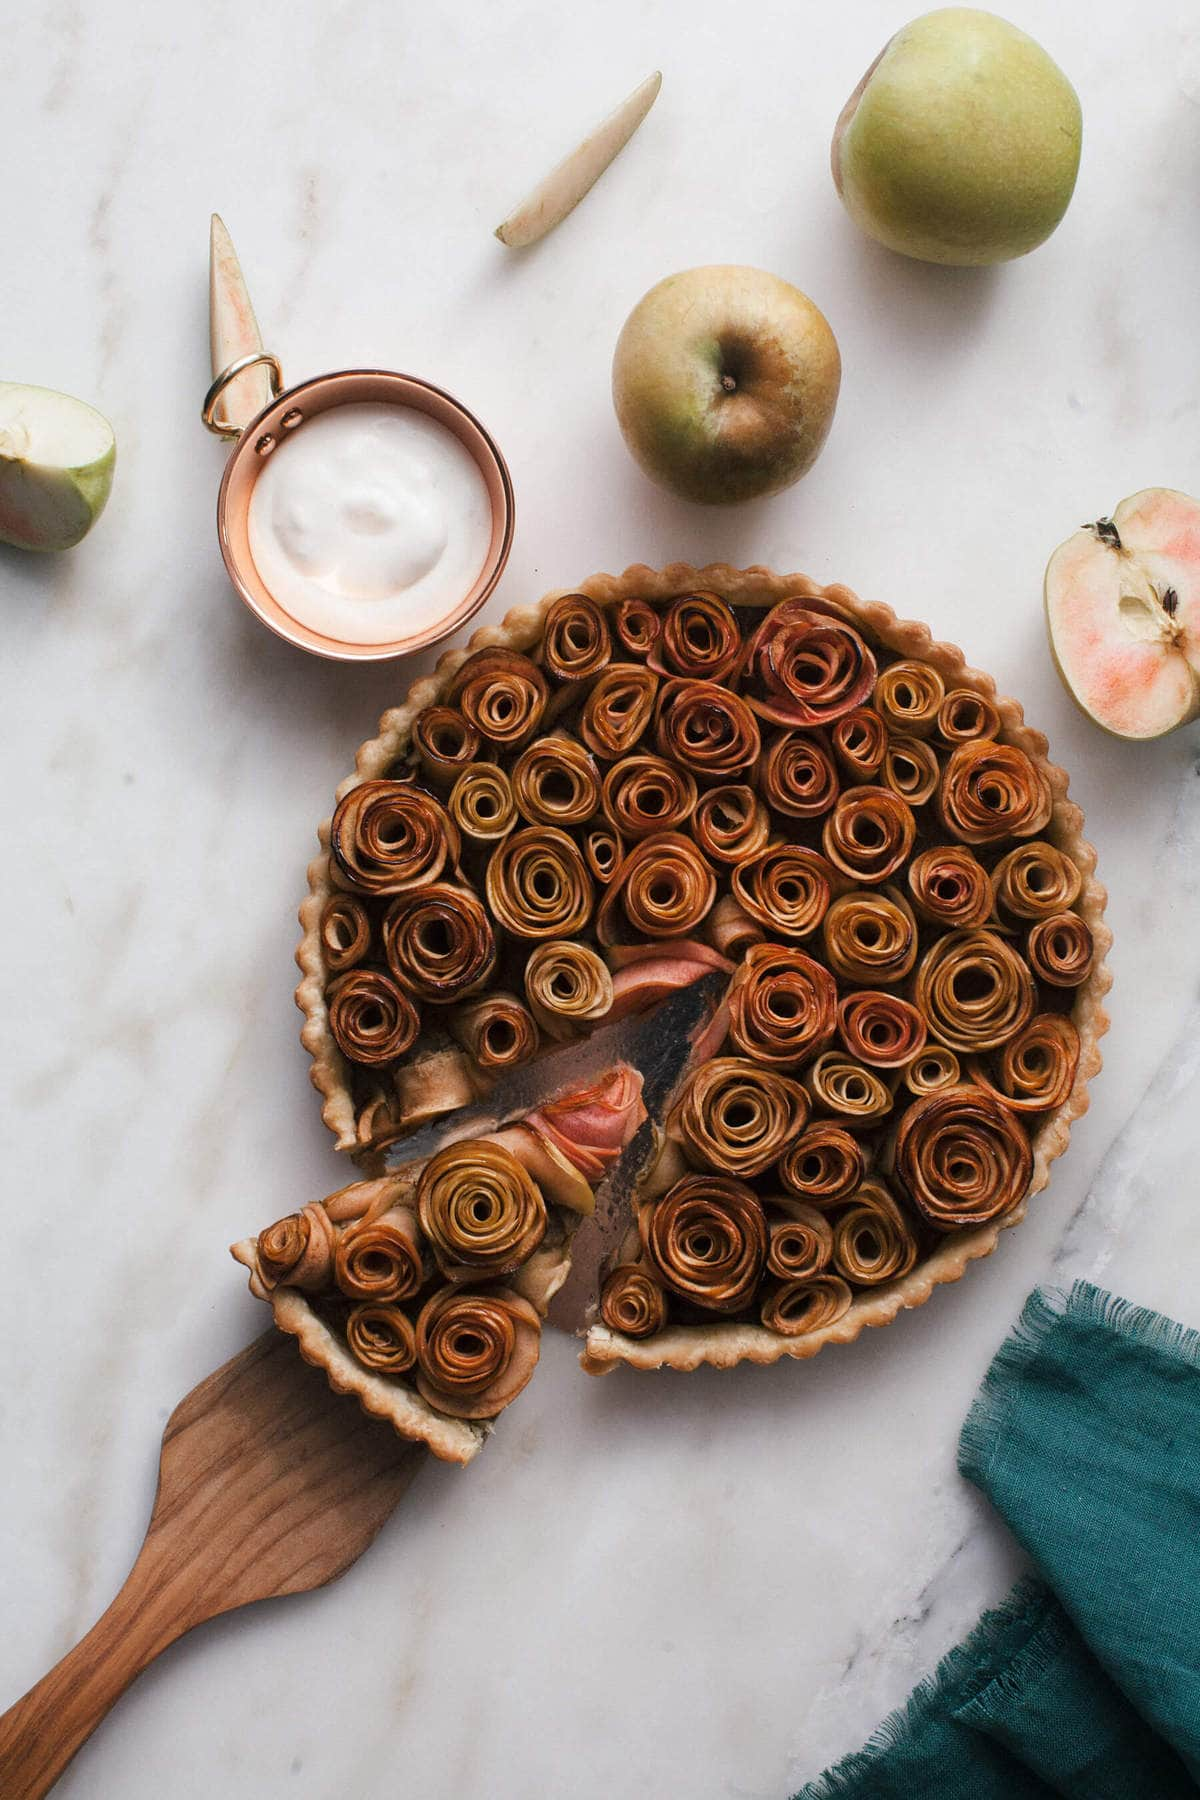 Rose Apple Pistachio Tart